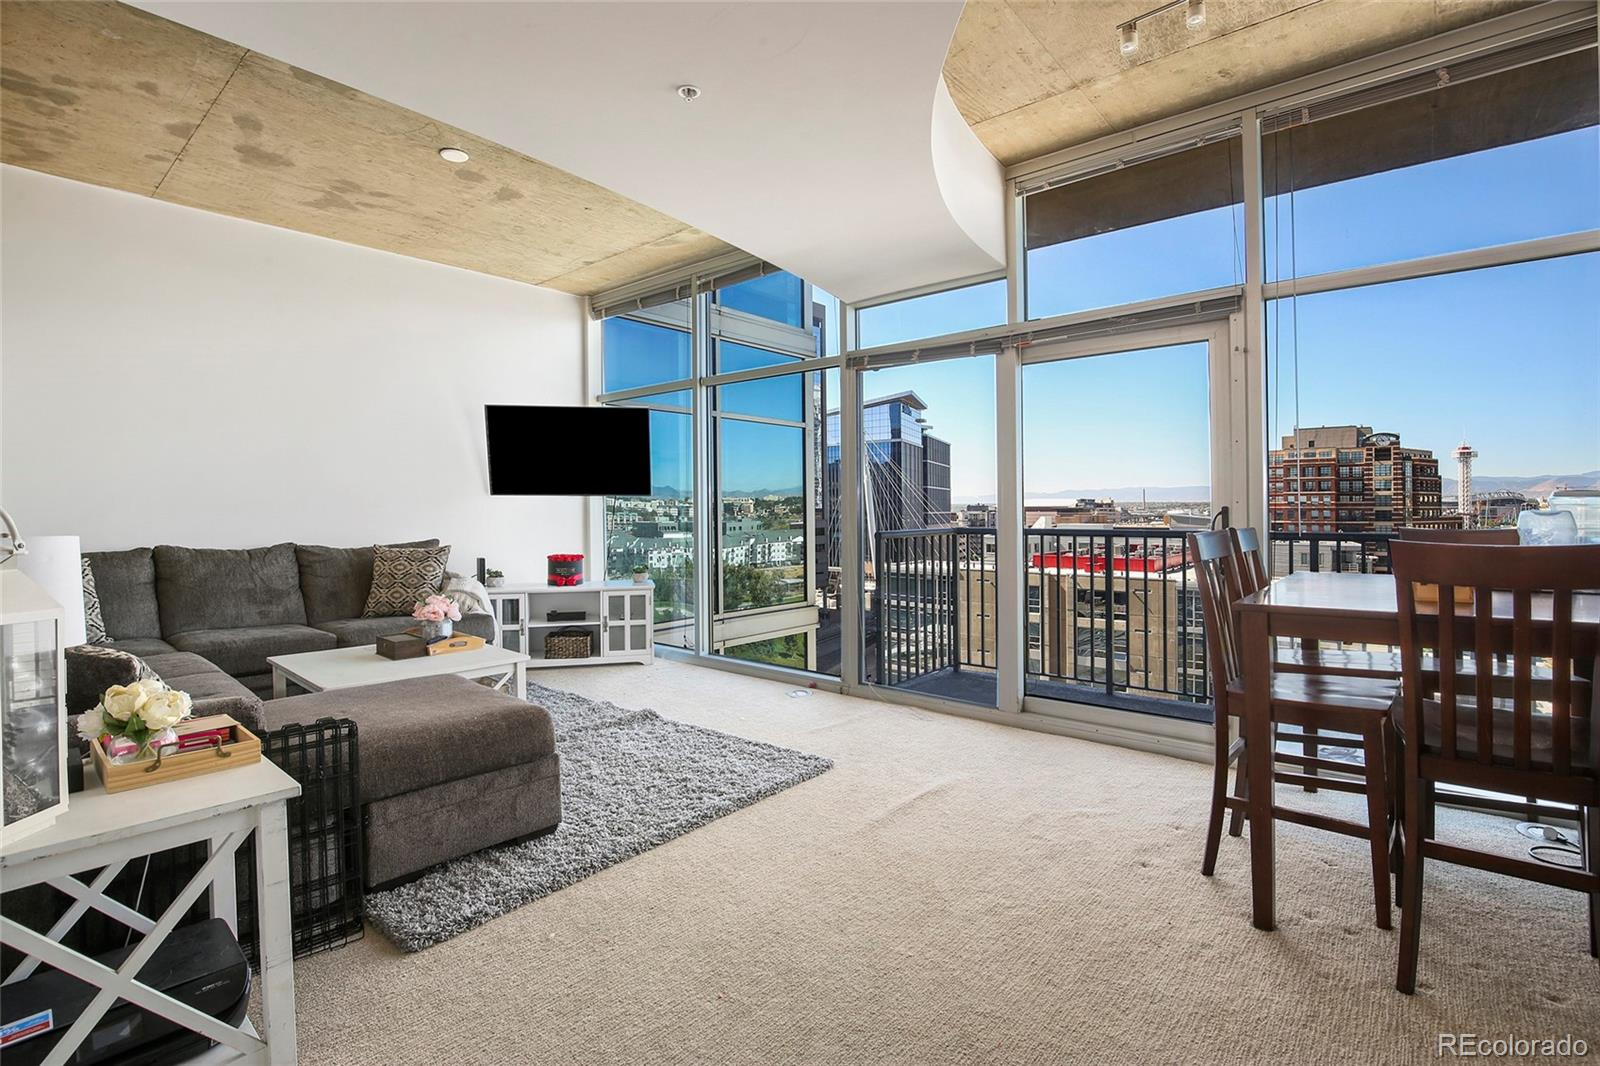 Located on the 10th floor in one of the best buildings in Riverfront Park, this one-bedroom condominium is thoughtfully designed for city living. Inside, floor-to-ceiling windows allow for an abundance of natural light, with an open floor plan and modern concrete ceilings. Relax on the spacious balcony and enjoy views of Commons Park, the Rocky Mountains, and Downtown Denver, or step right outside the front door to experience Denver's finest restaurants, shopping, museums, and entertainment. The Glass House features a wide range of amenities, including an outdoor pool, theater room, health club, business center, community room, and concierge desk, with easy access to Union Station, LoDo, and LoHi. Residence includes new carpet, washer and dryer, walk-in closet, and a parking space.